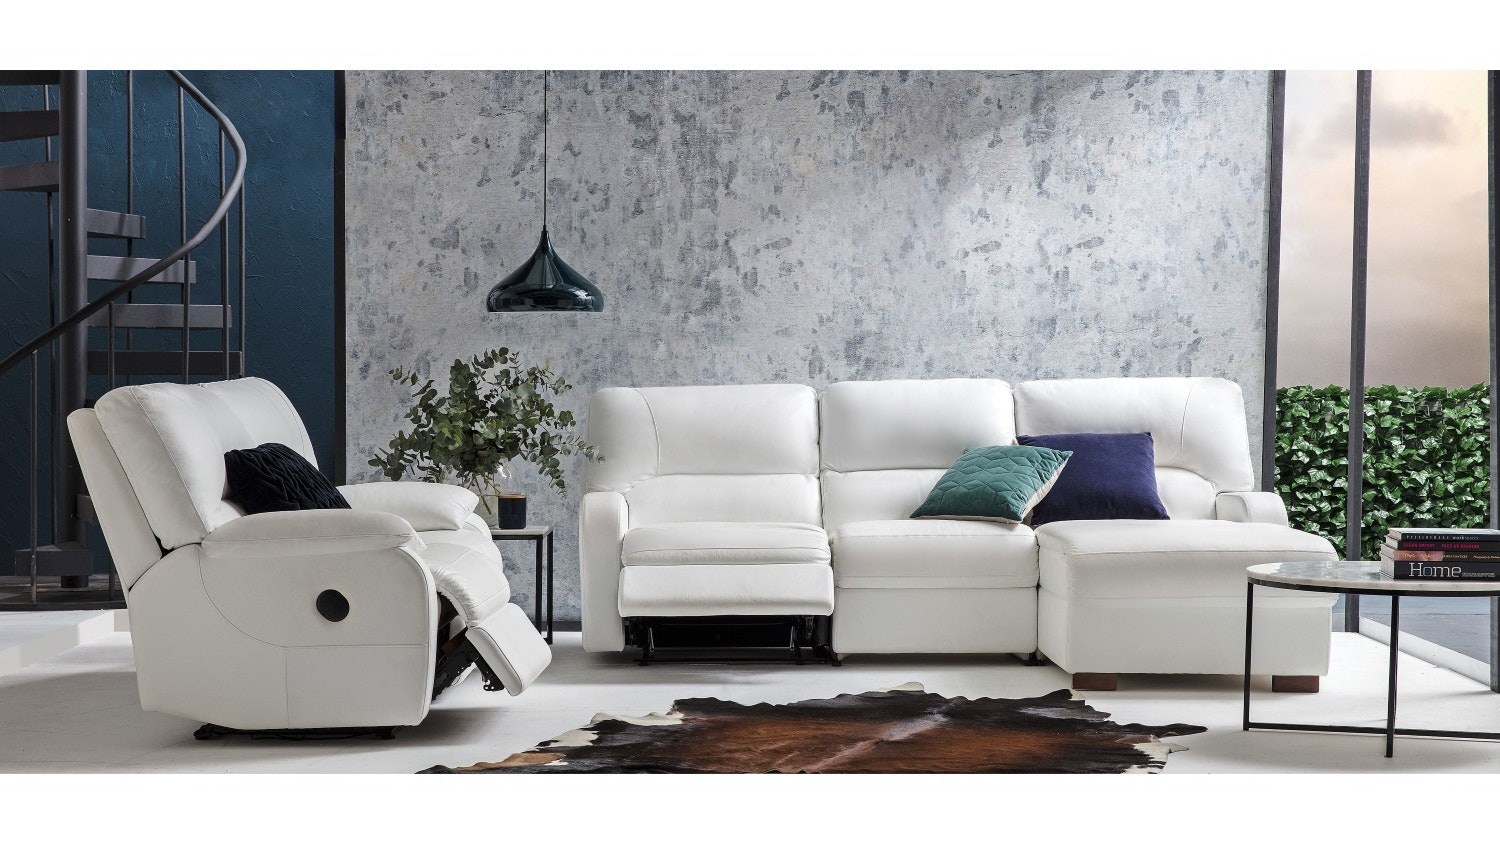 Caprice 2.5 Seater Leather Sofa With Chaise and Reclining Action